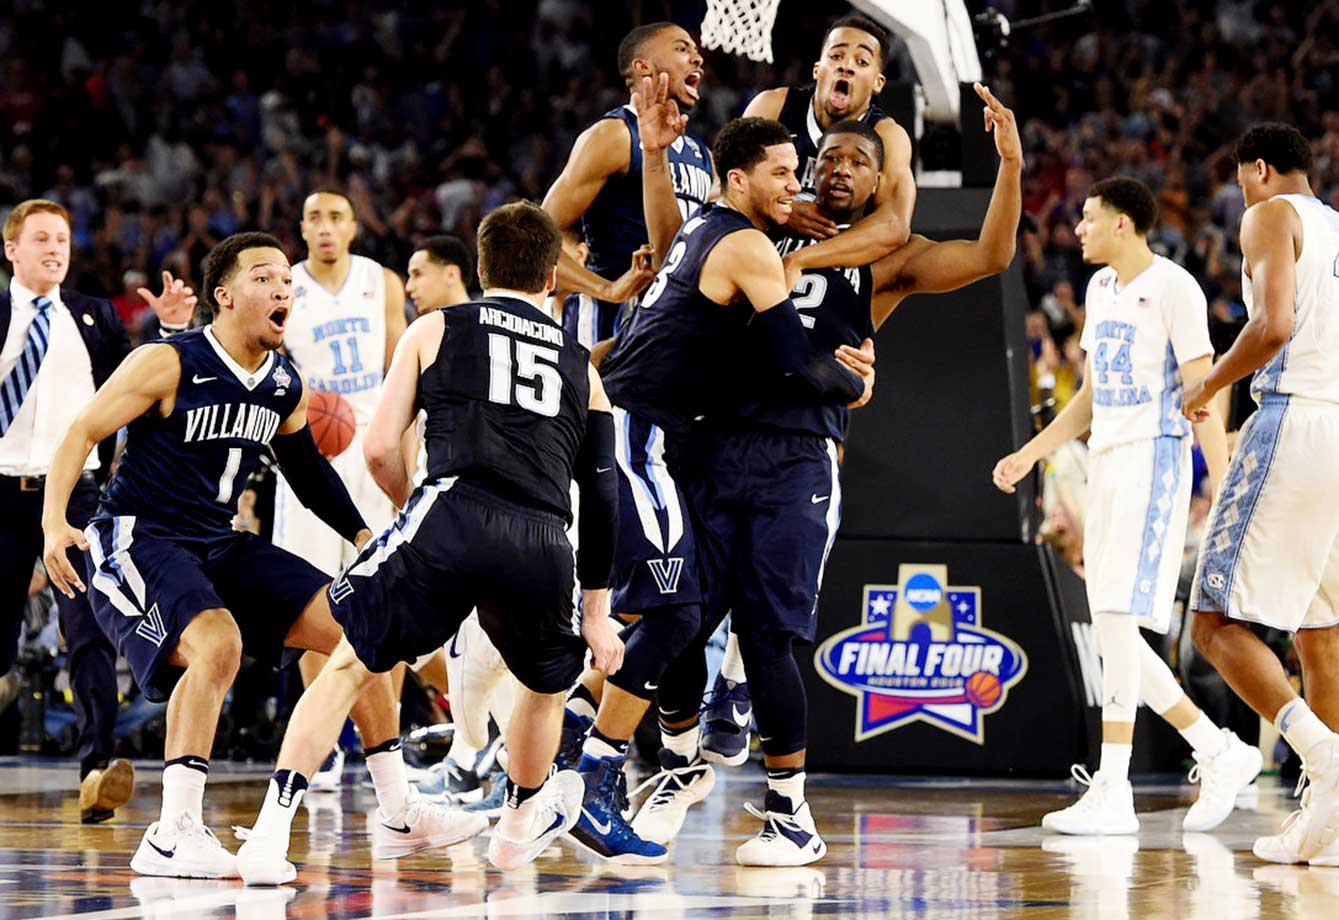 Kris Jenkins is mobbed by his Villanova teammates after his buzzer-beating three gave the Wildcats a 77-74 win over North Carolina. (Go to si.com/photos to see the full national title game gallery.)